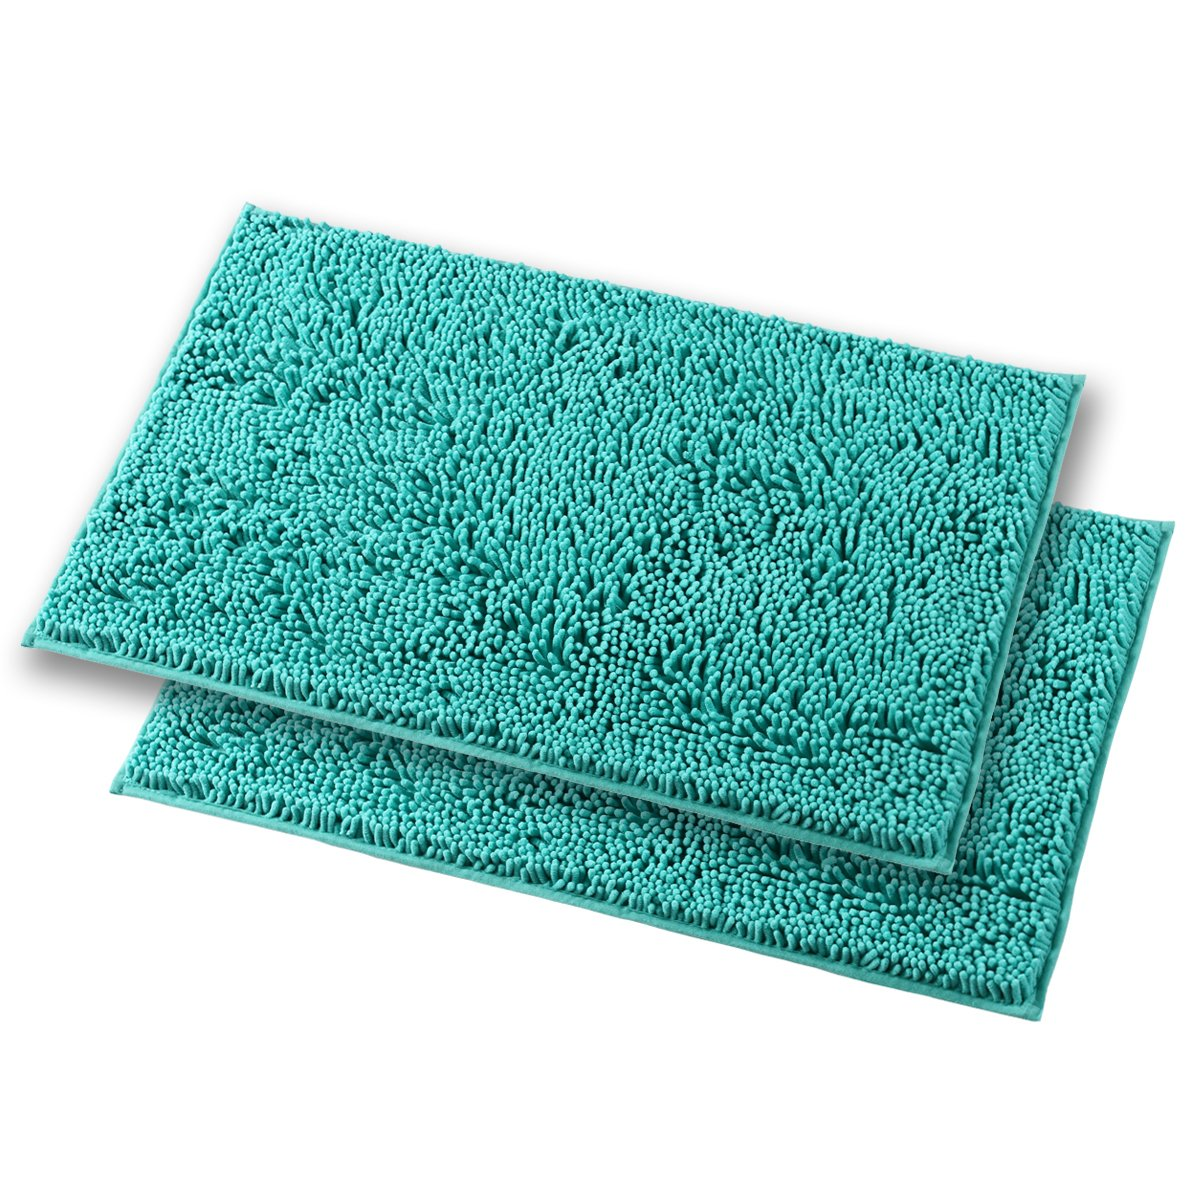 Mayshine Bath mats for Bathroom Rugs Non Slip Machine Washable Soft Microfiber 2 Pack (20×32 inches, Turquoise)